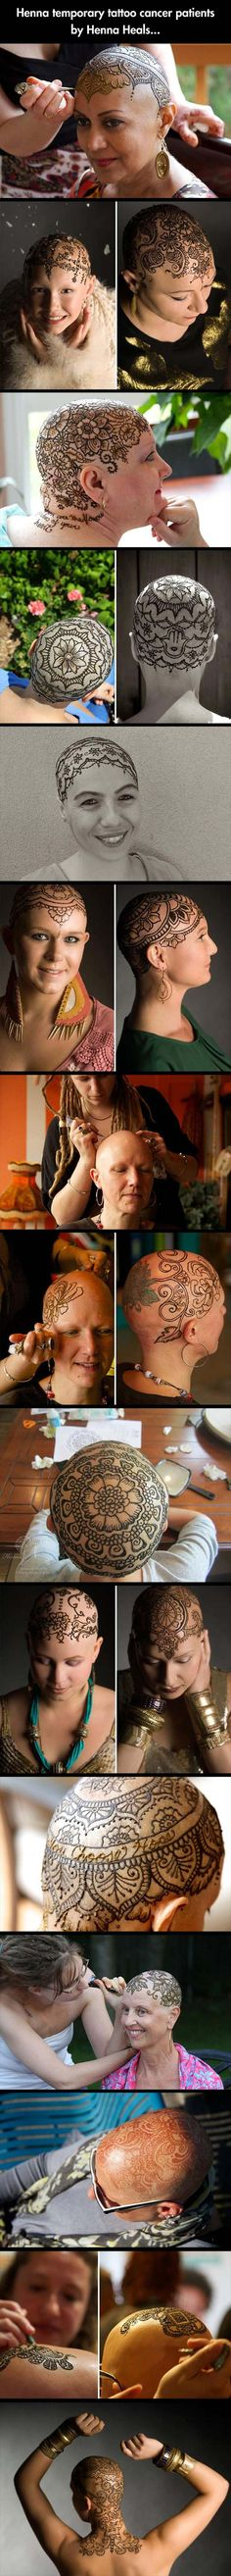 Amazing Henna For Cancer Patients - 14 Pics